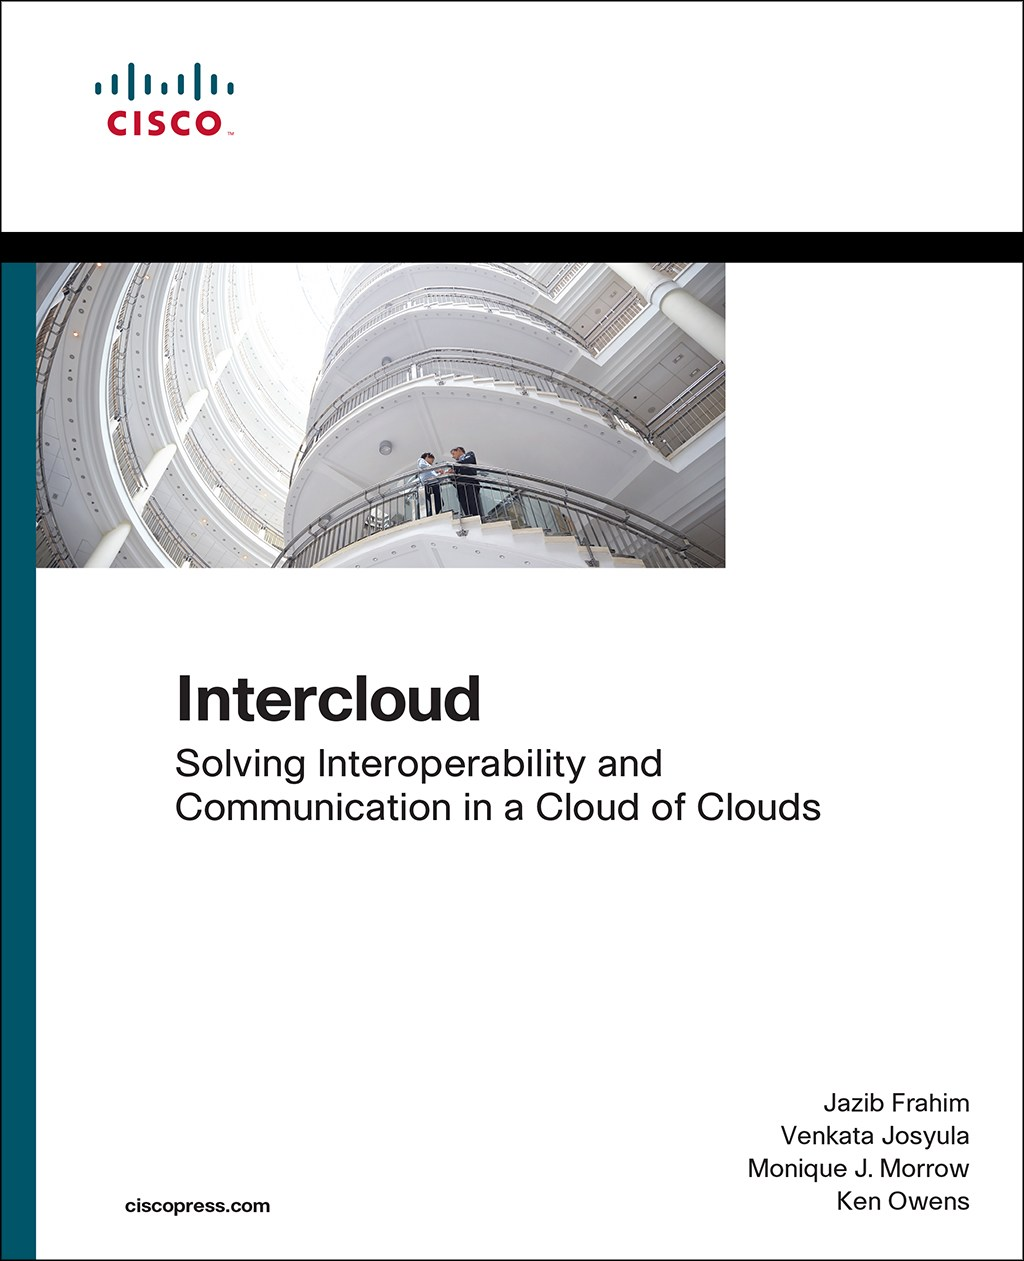 Intercloud: Solving Interoperability and Communication in a Cloud of Clouds